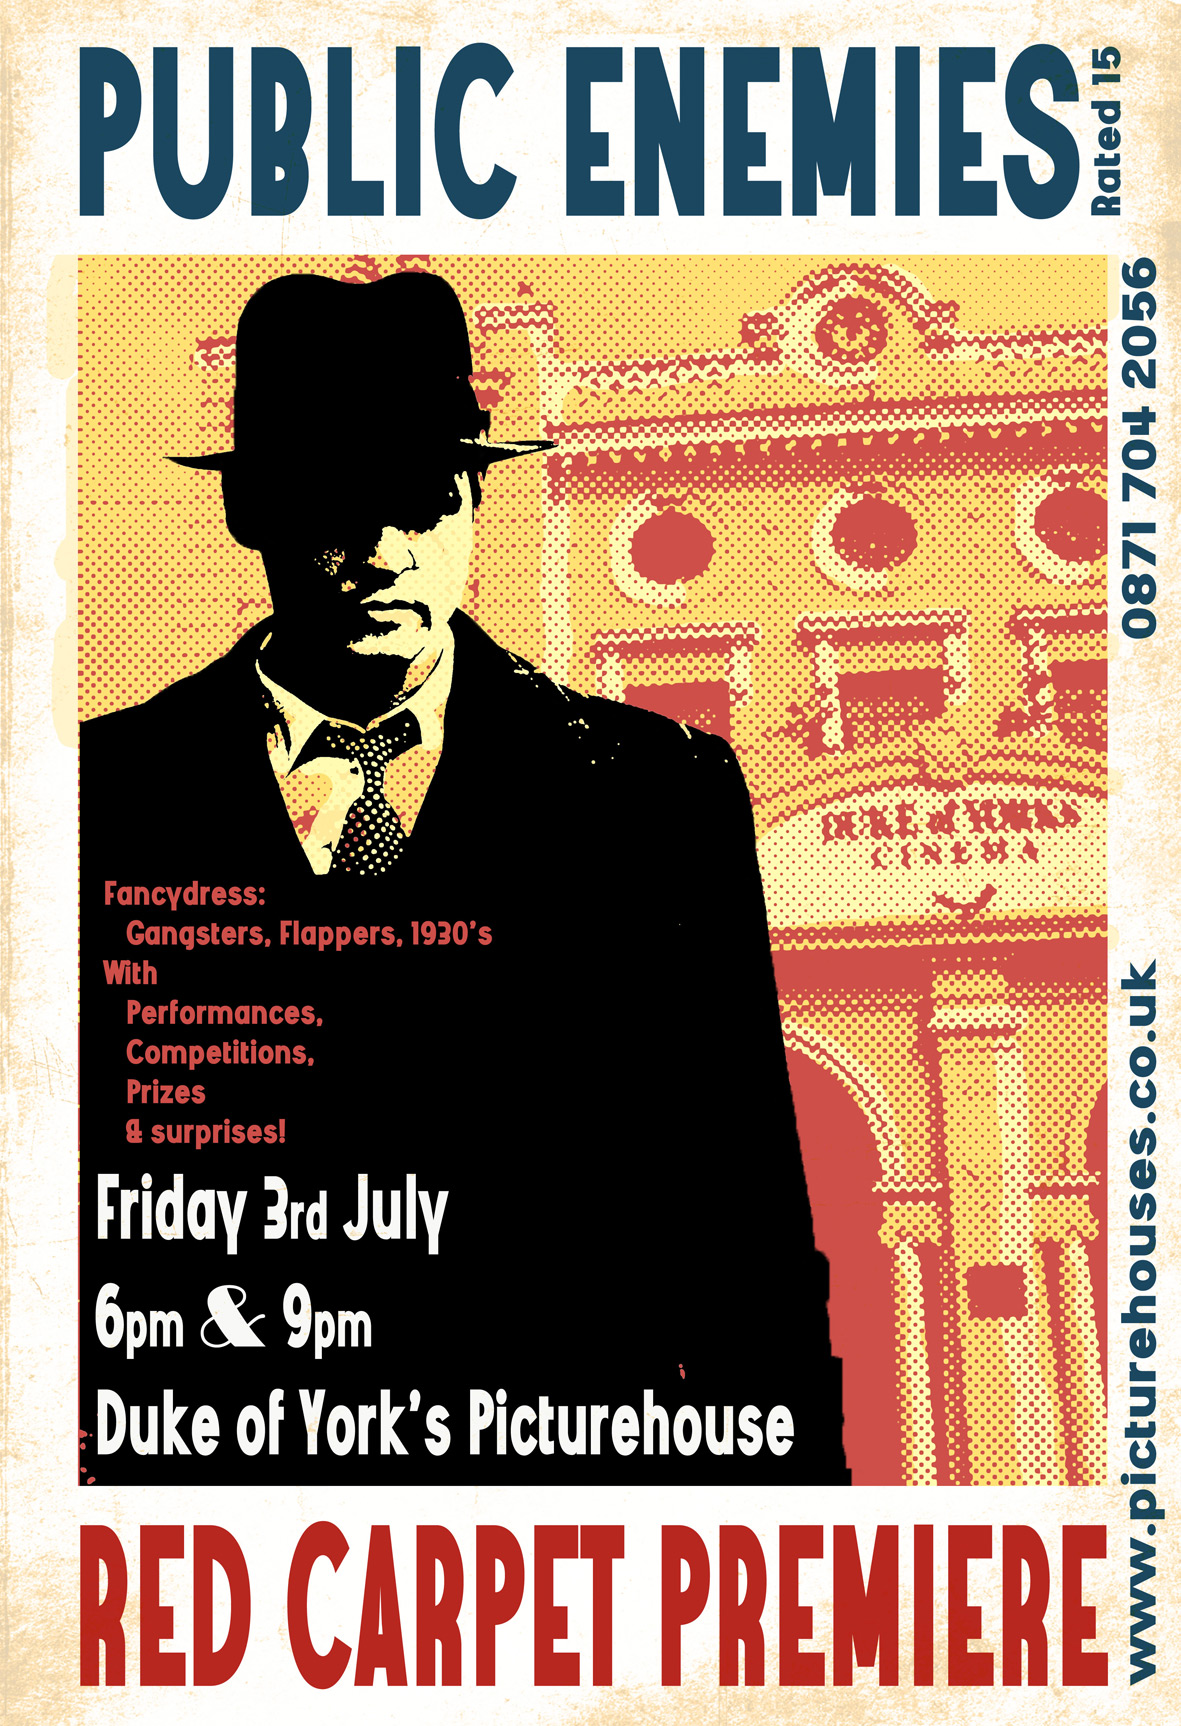 Last minute pormotional poster for the event by Ulysses Black,  2008.